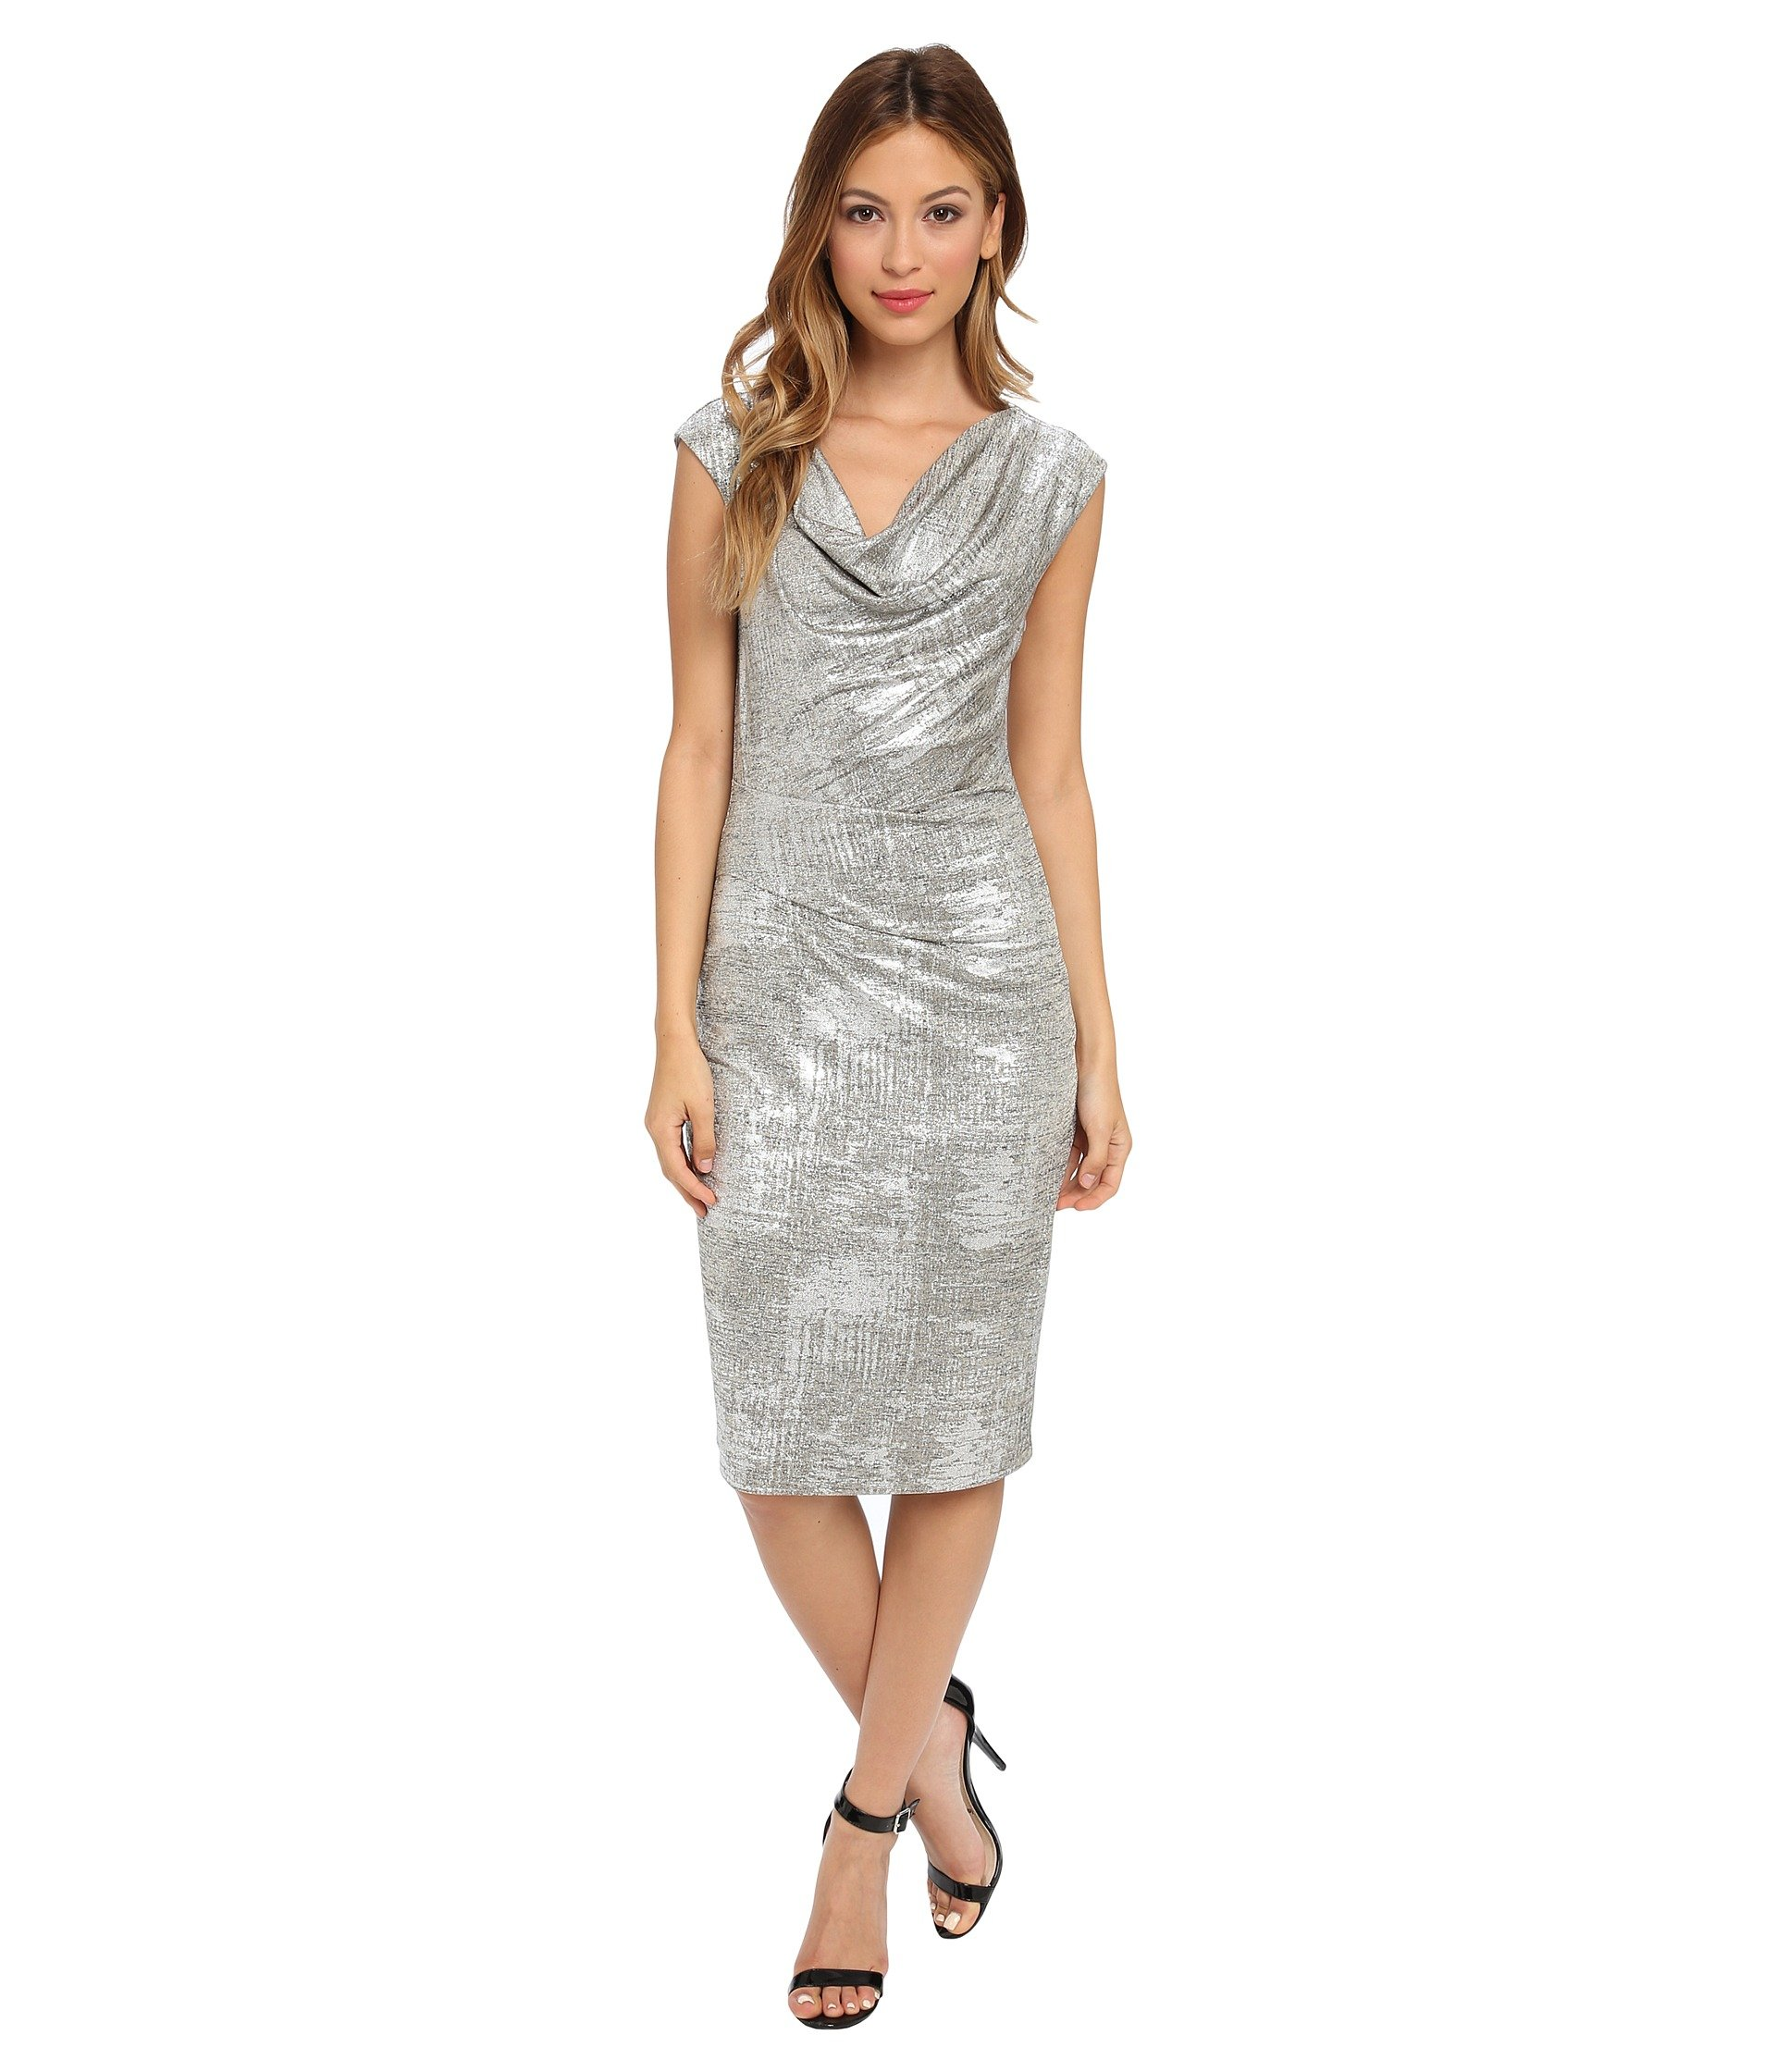 Lyst - Vince Camuto Onepiece Silver Metallic Cowl Neck Dress in Metallic 5481f7091373